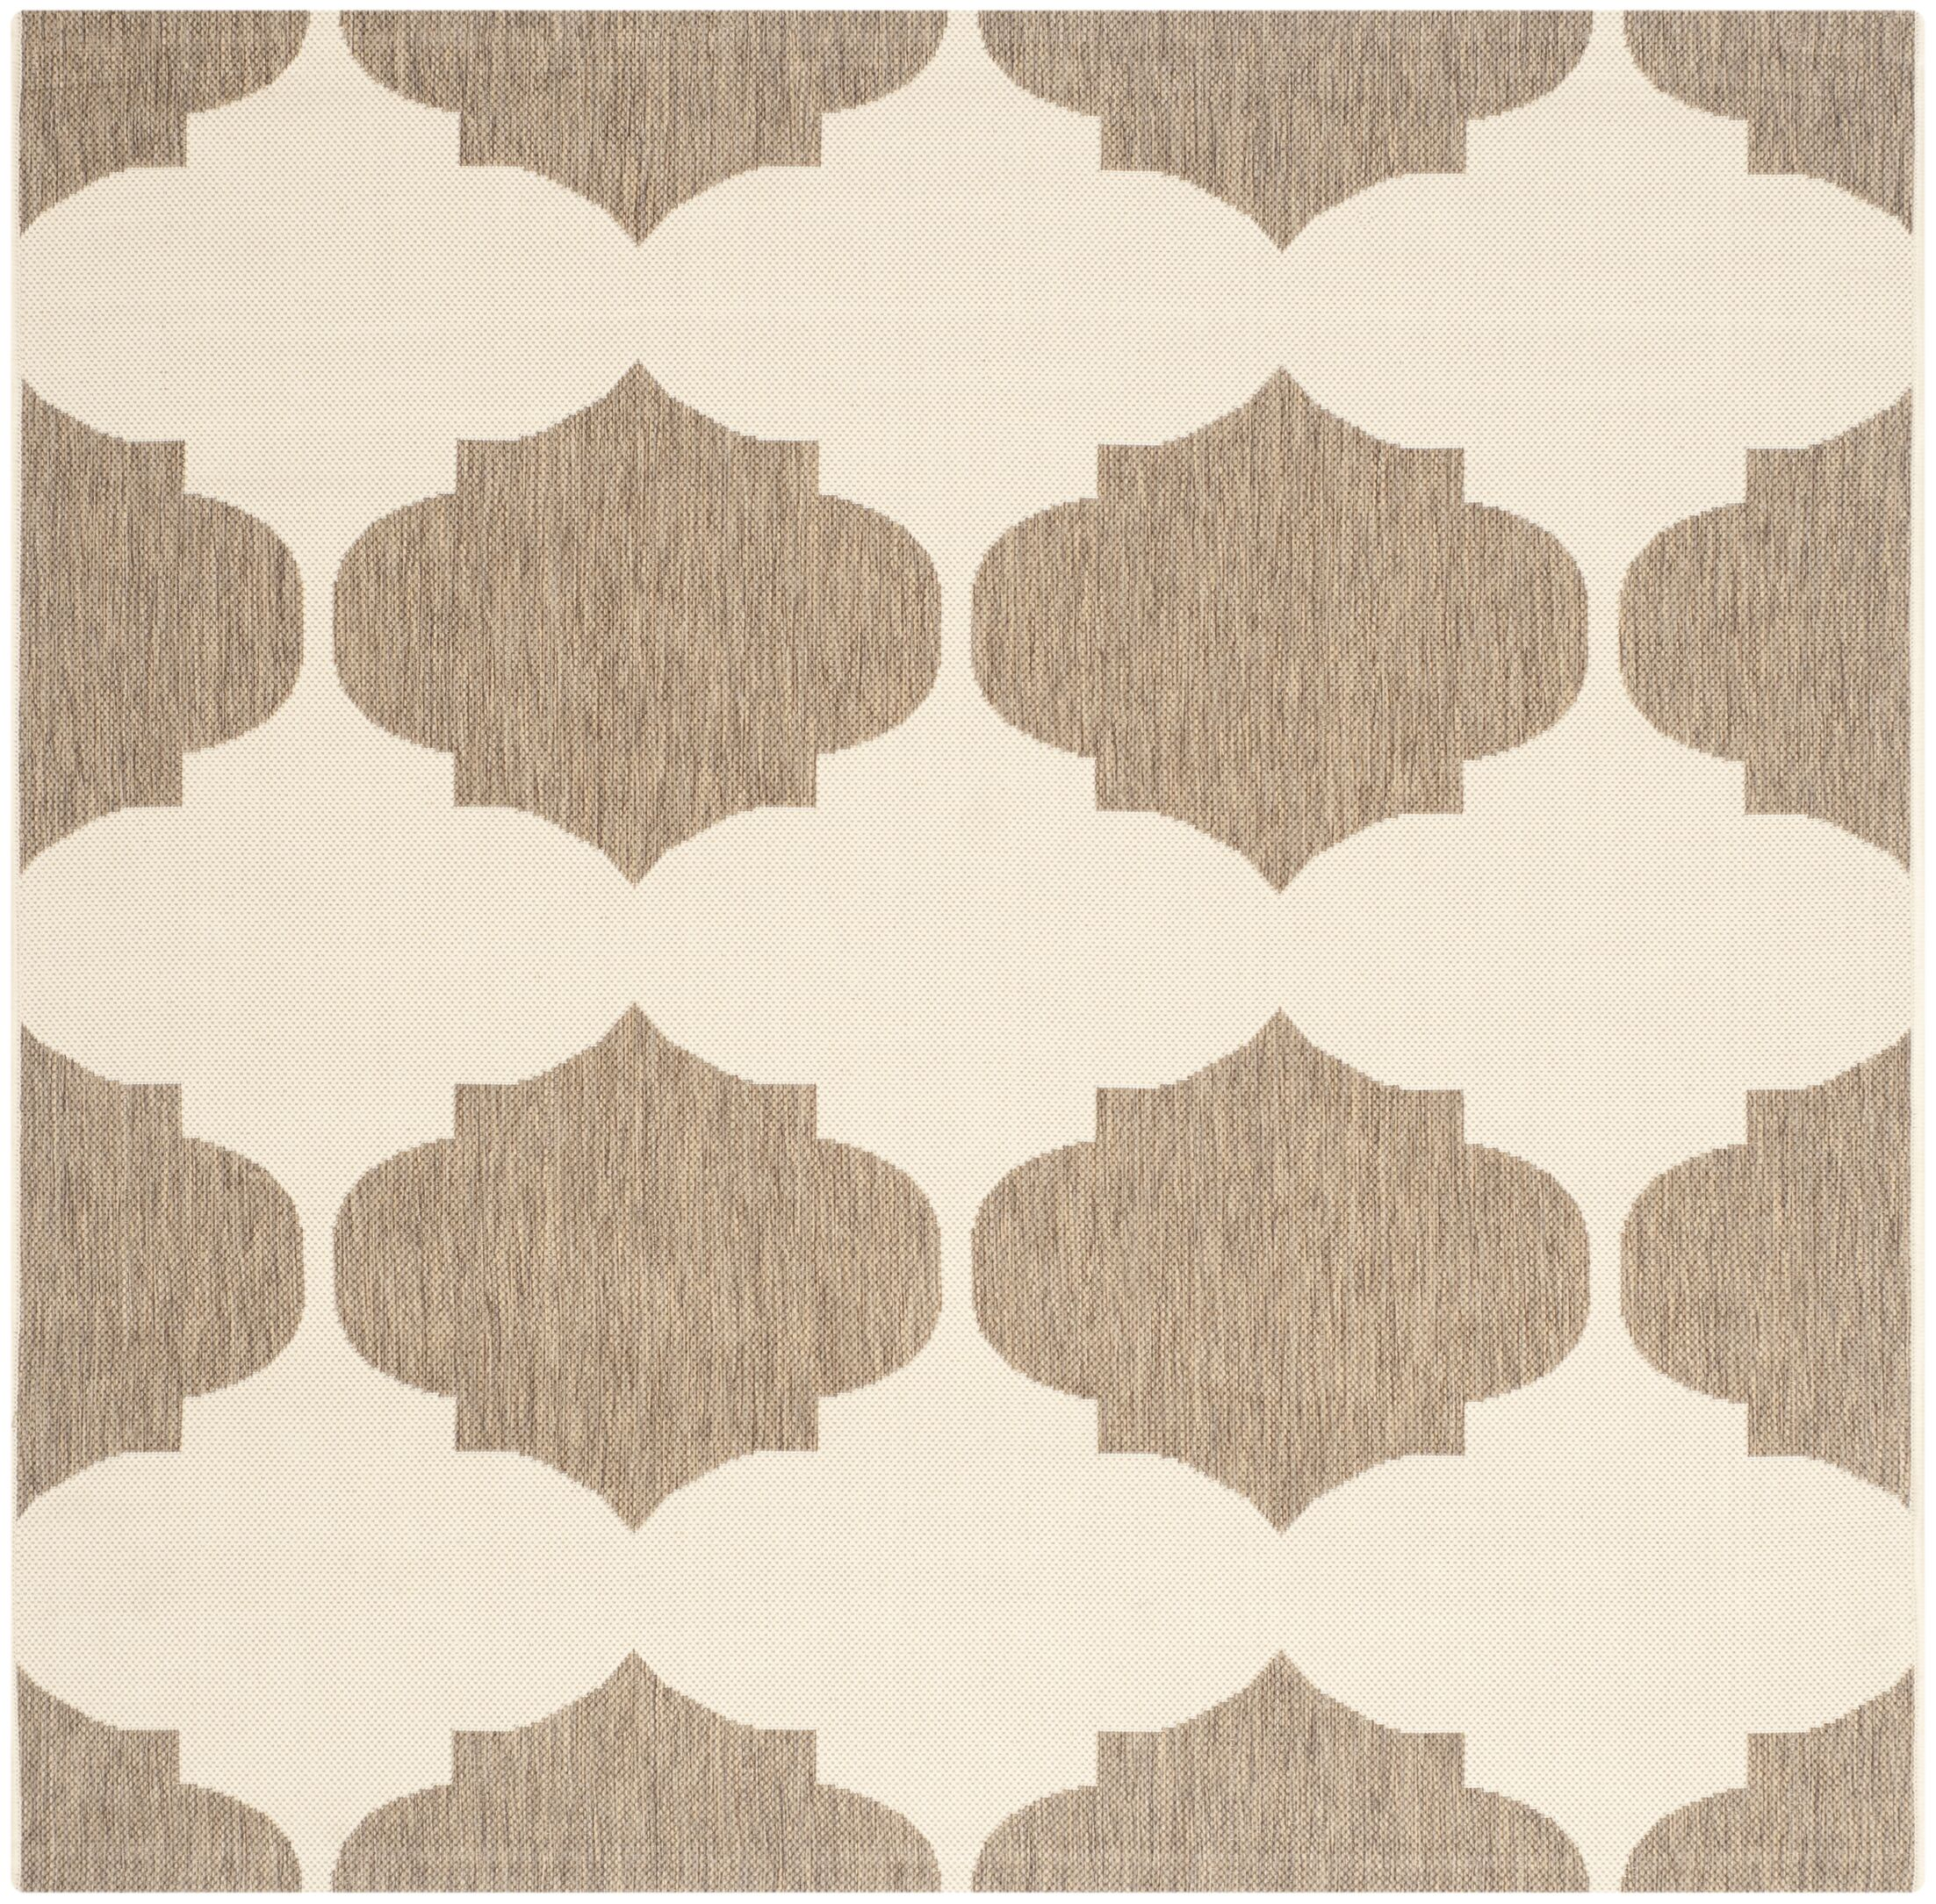 Short Beige/Brown Contemporary Rug Rug Size: Square 5'3